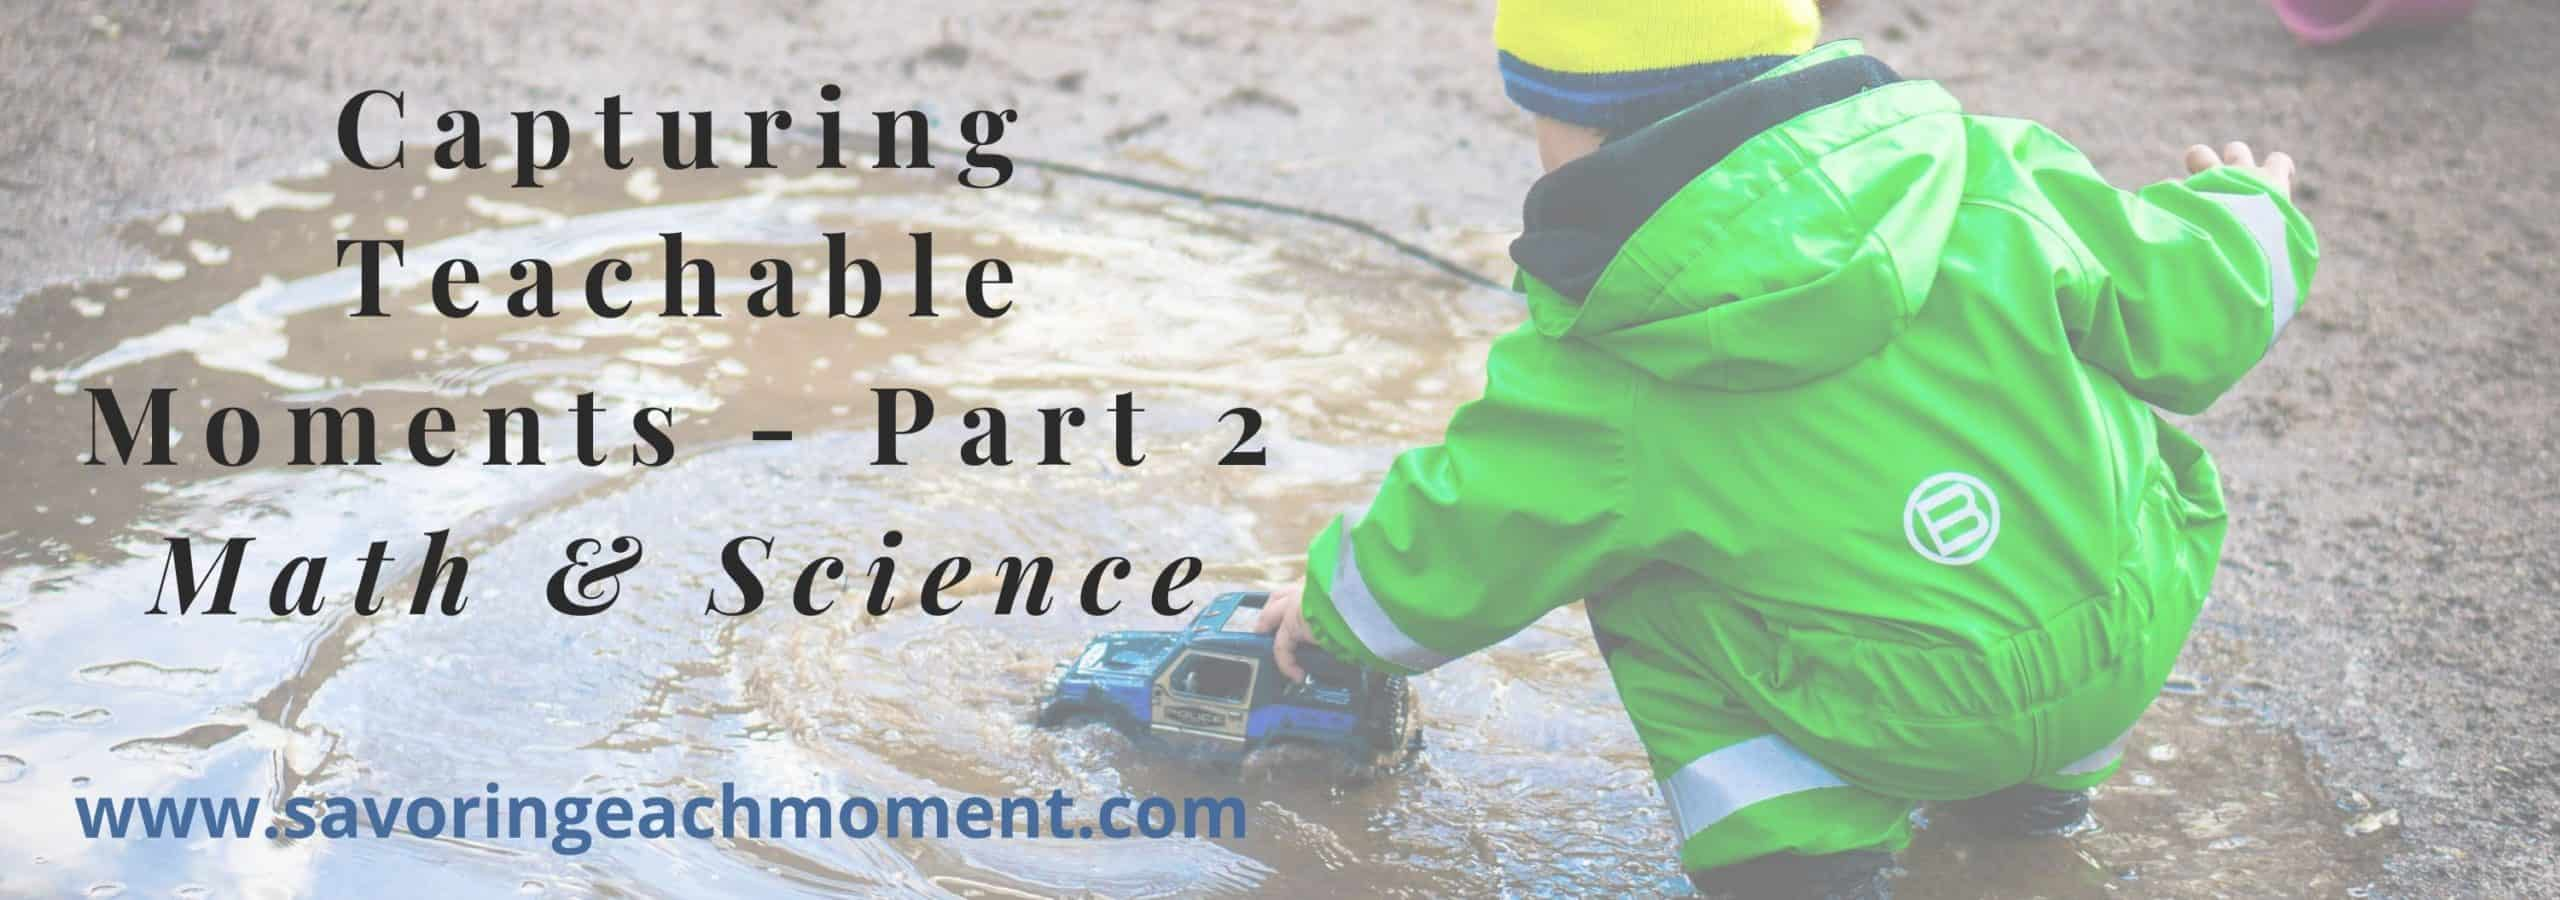 Young child wearing a green rain jacket, playing in a puddle